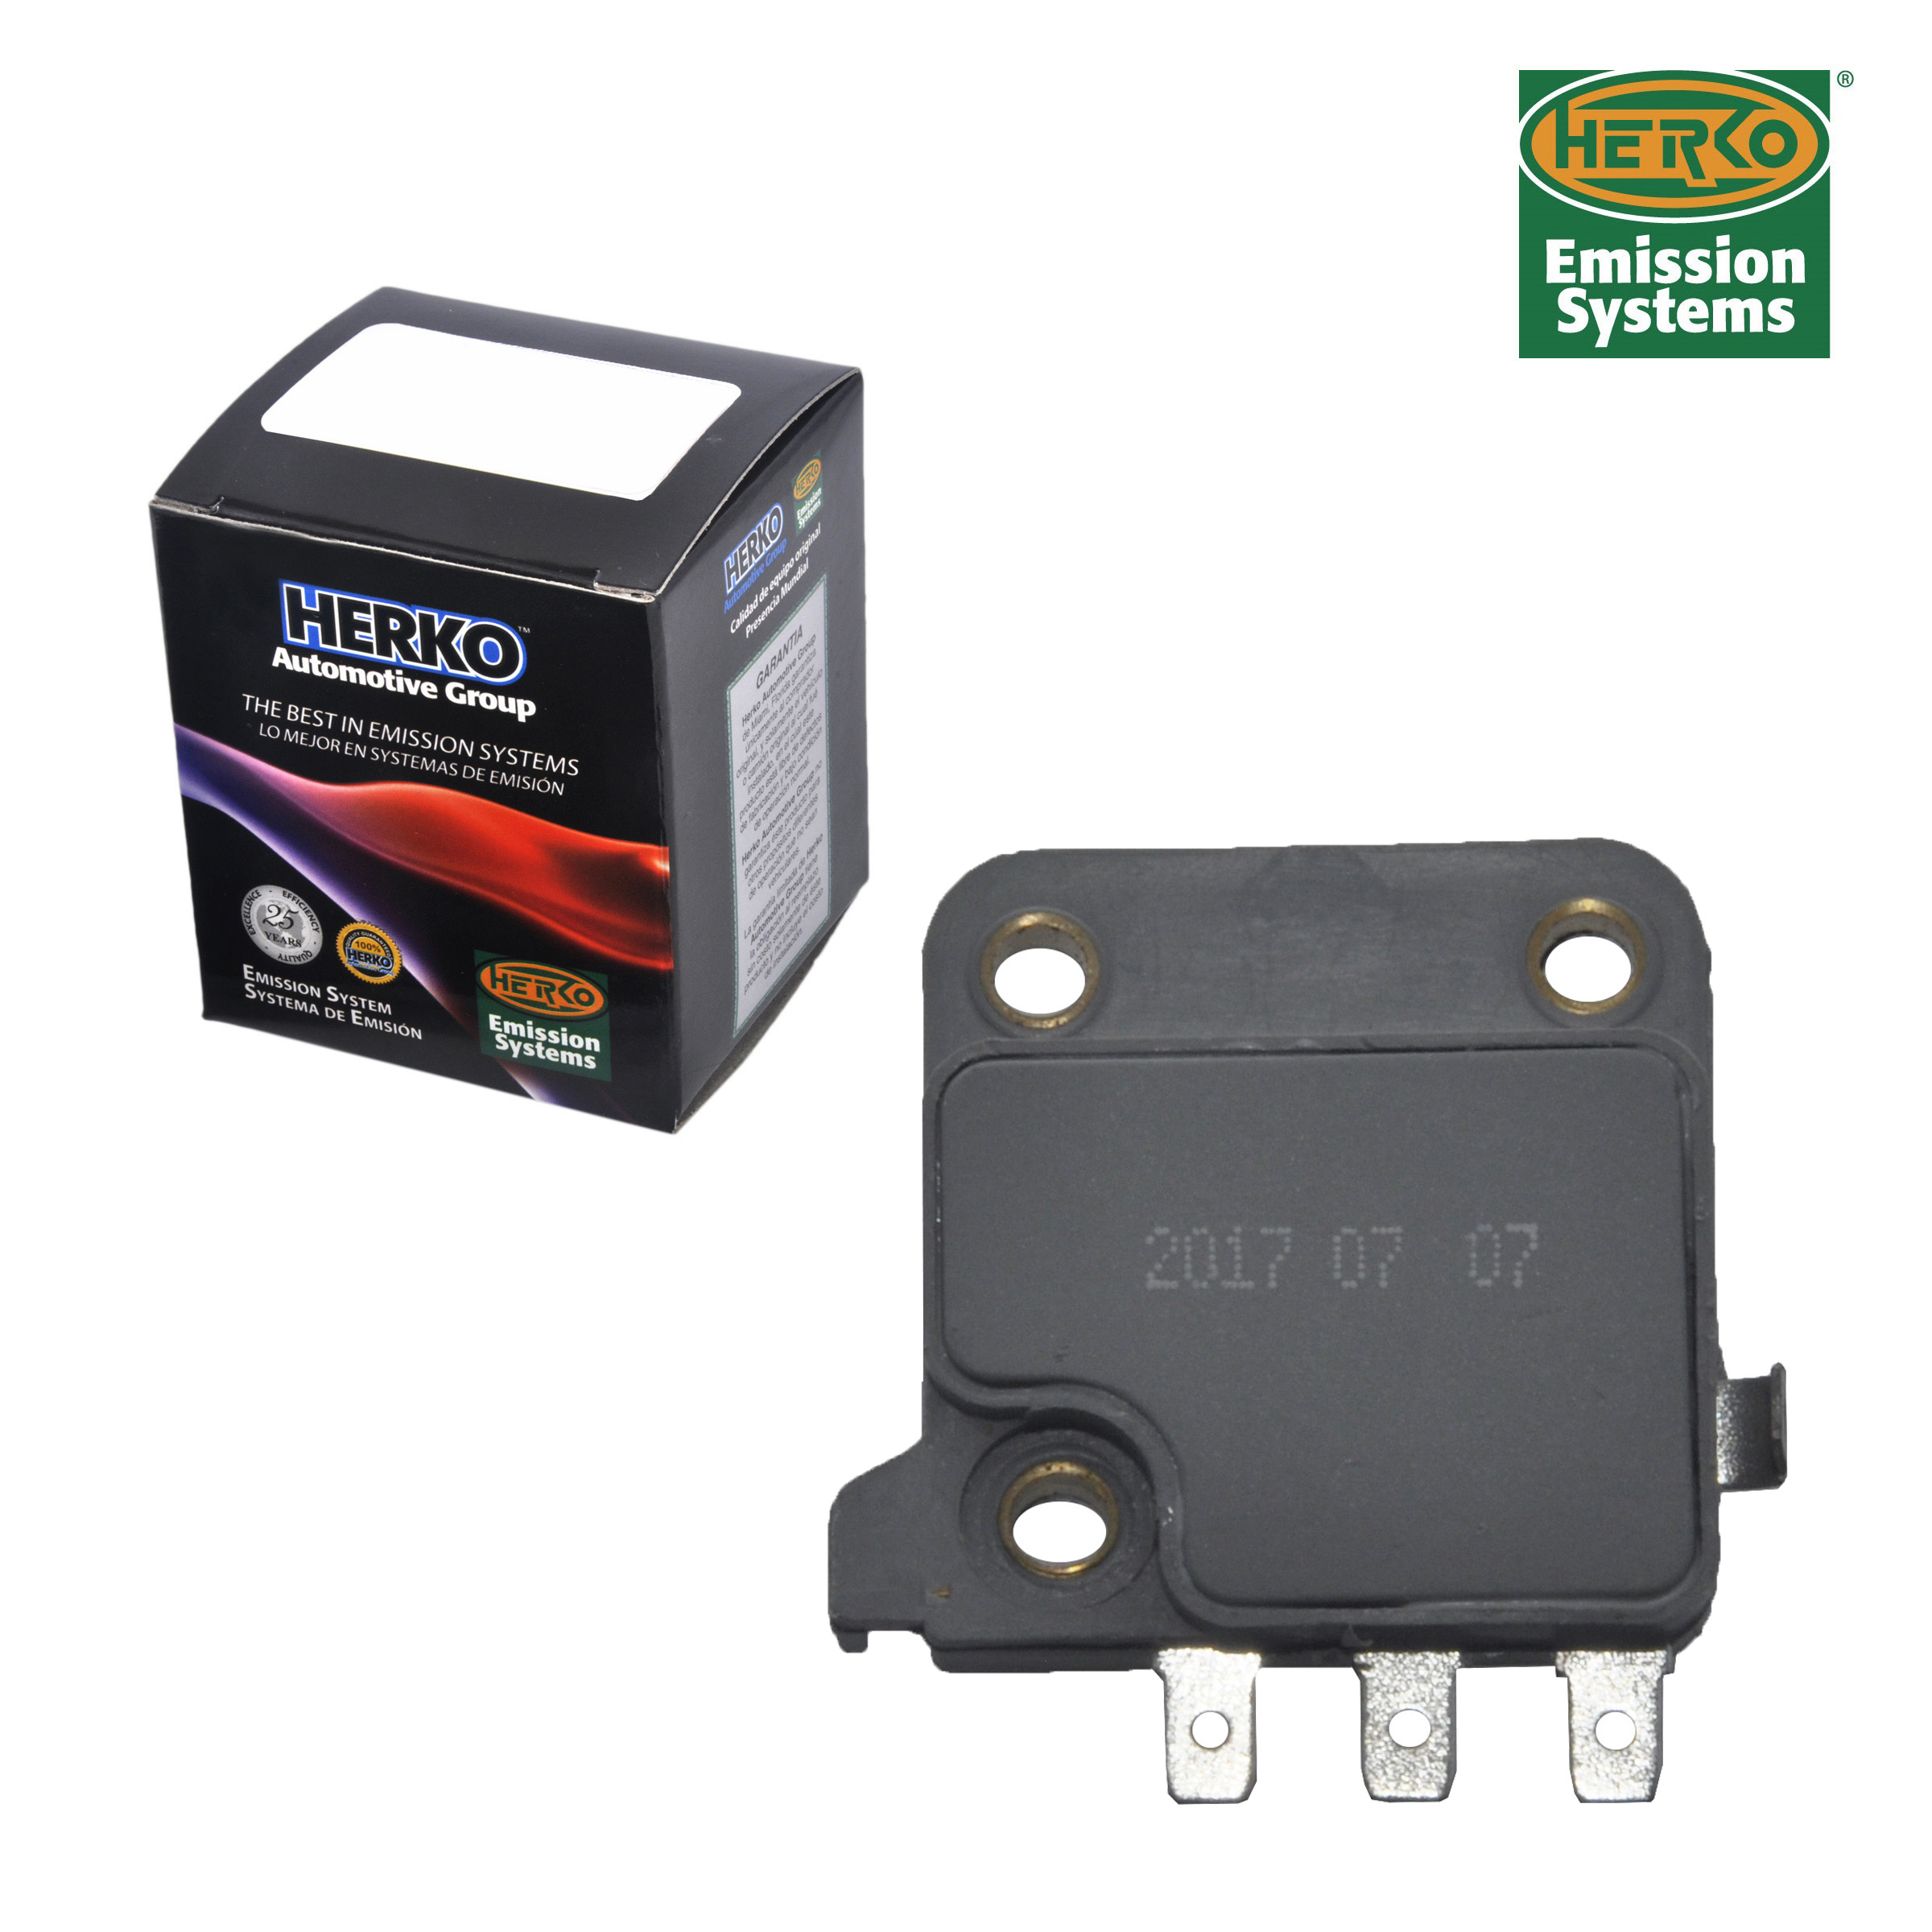 Details about Herko Ignition Control Module HLX036 LX734 For Honda on